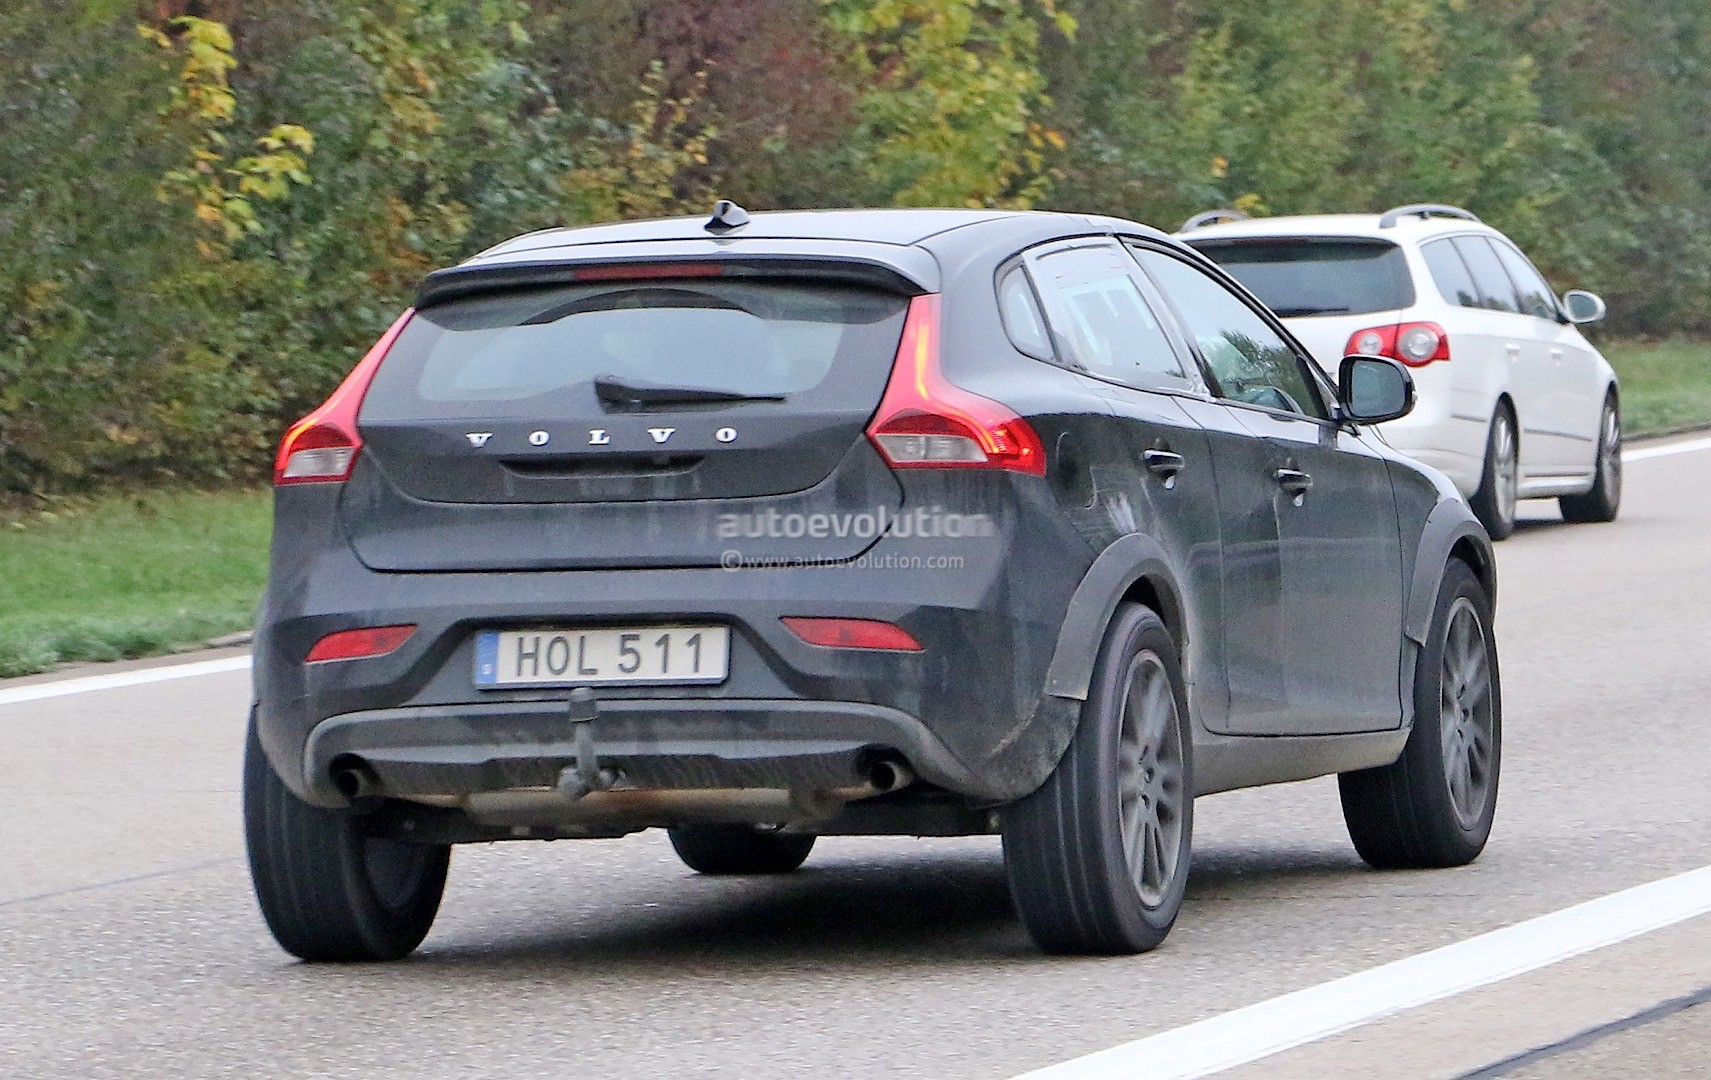 First Pictures Of The Volvo Xc40 Test Mule Future Q3 X1 And Gla  petitor Photo Gallery 101245 on 2015 volvo xc60 awd